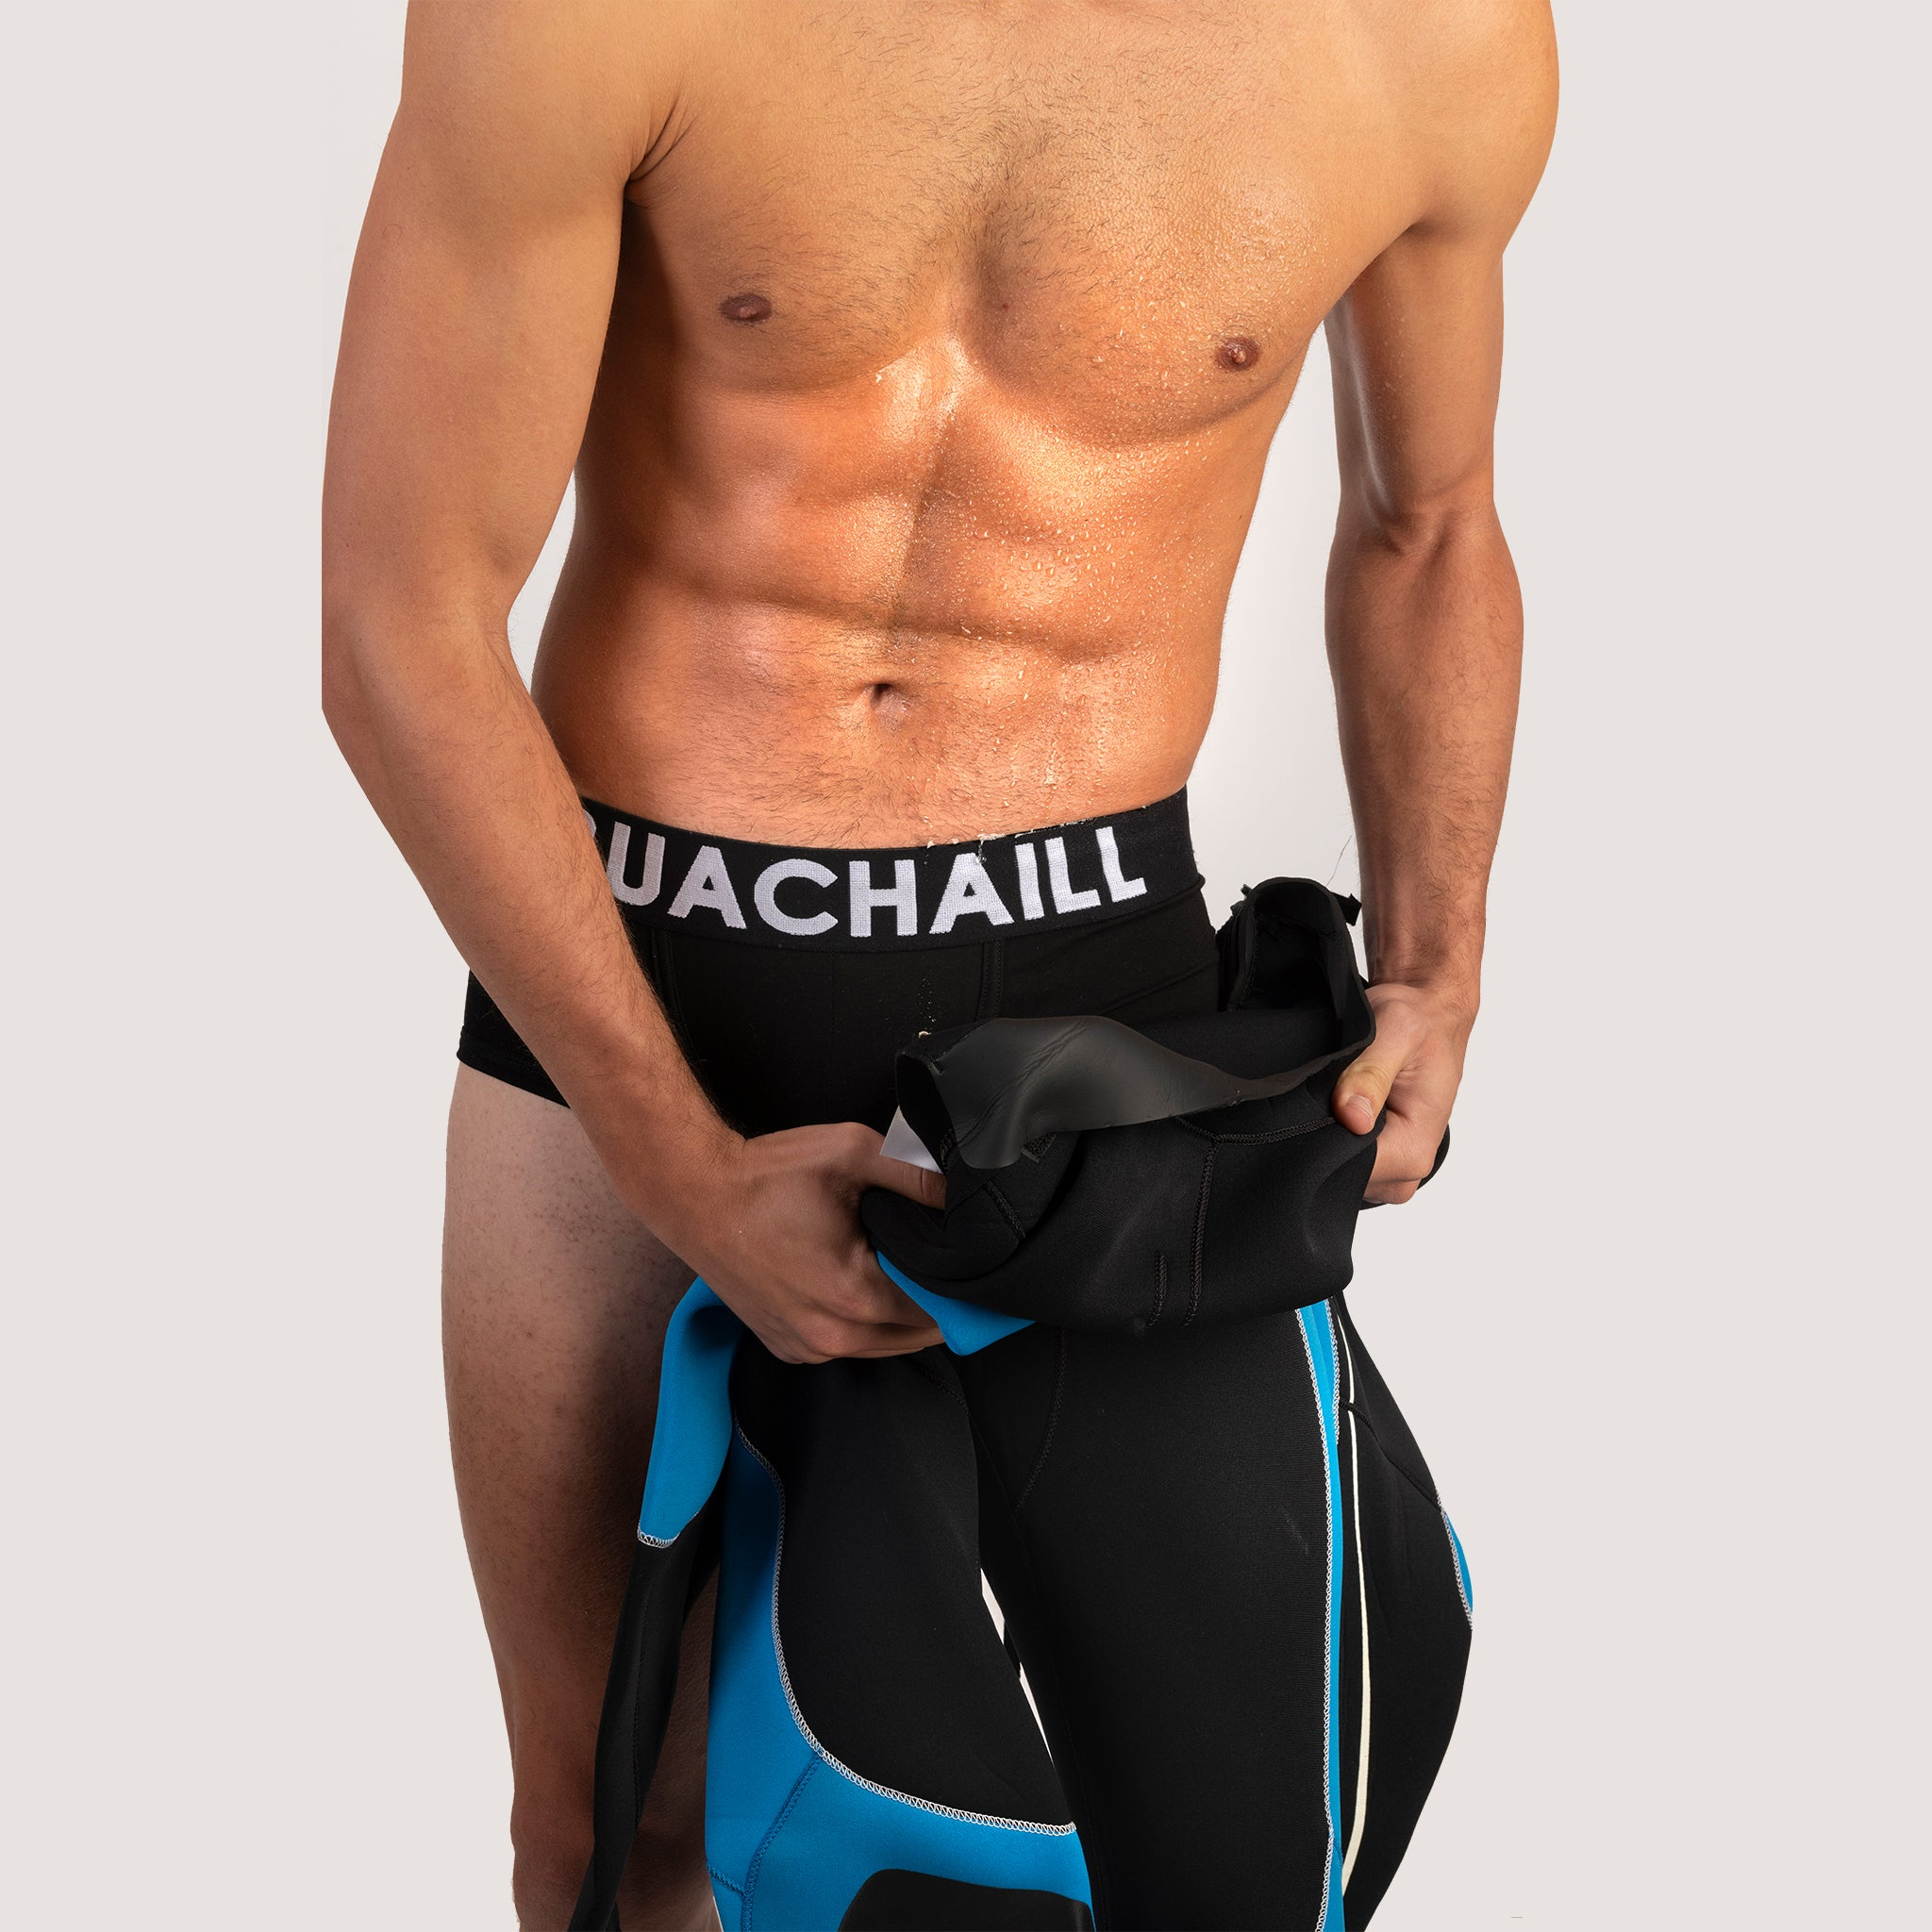 Black Buachaill boxer shorts and a diving suit